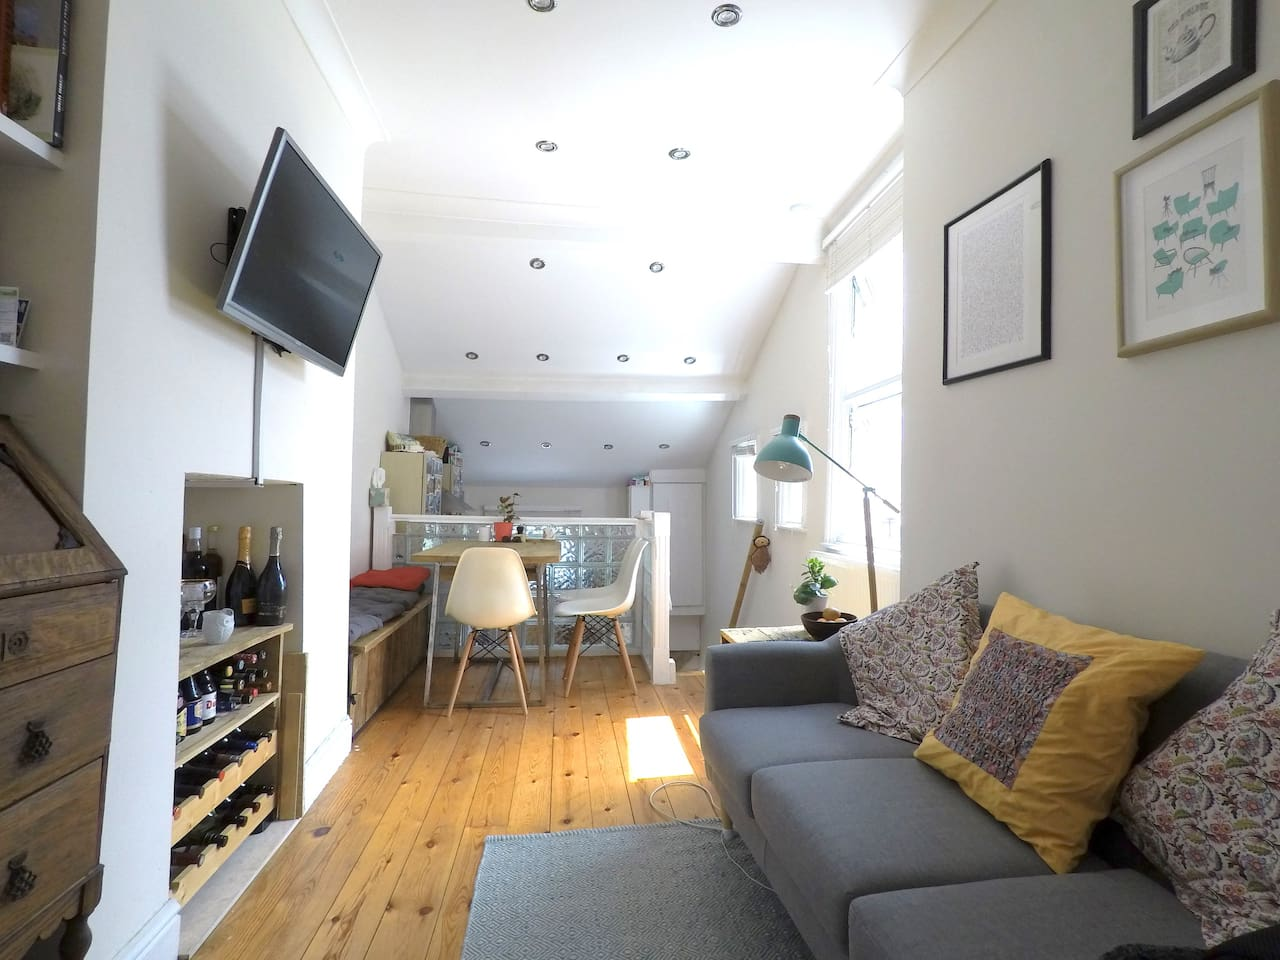 The living space is bright and airy